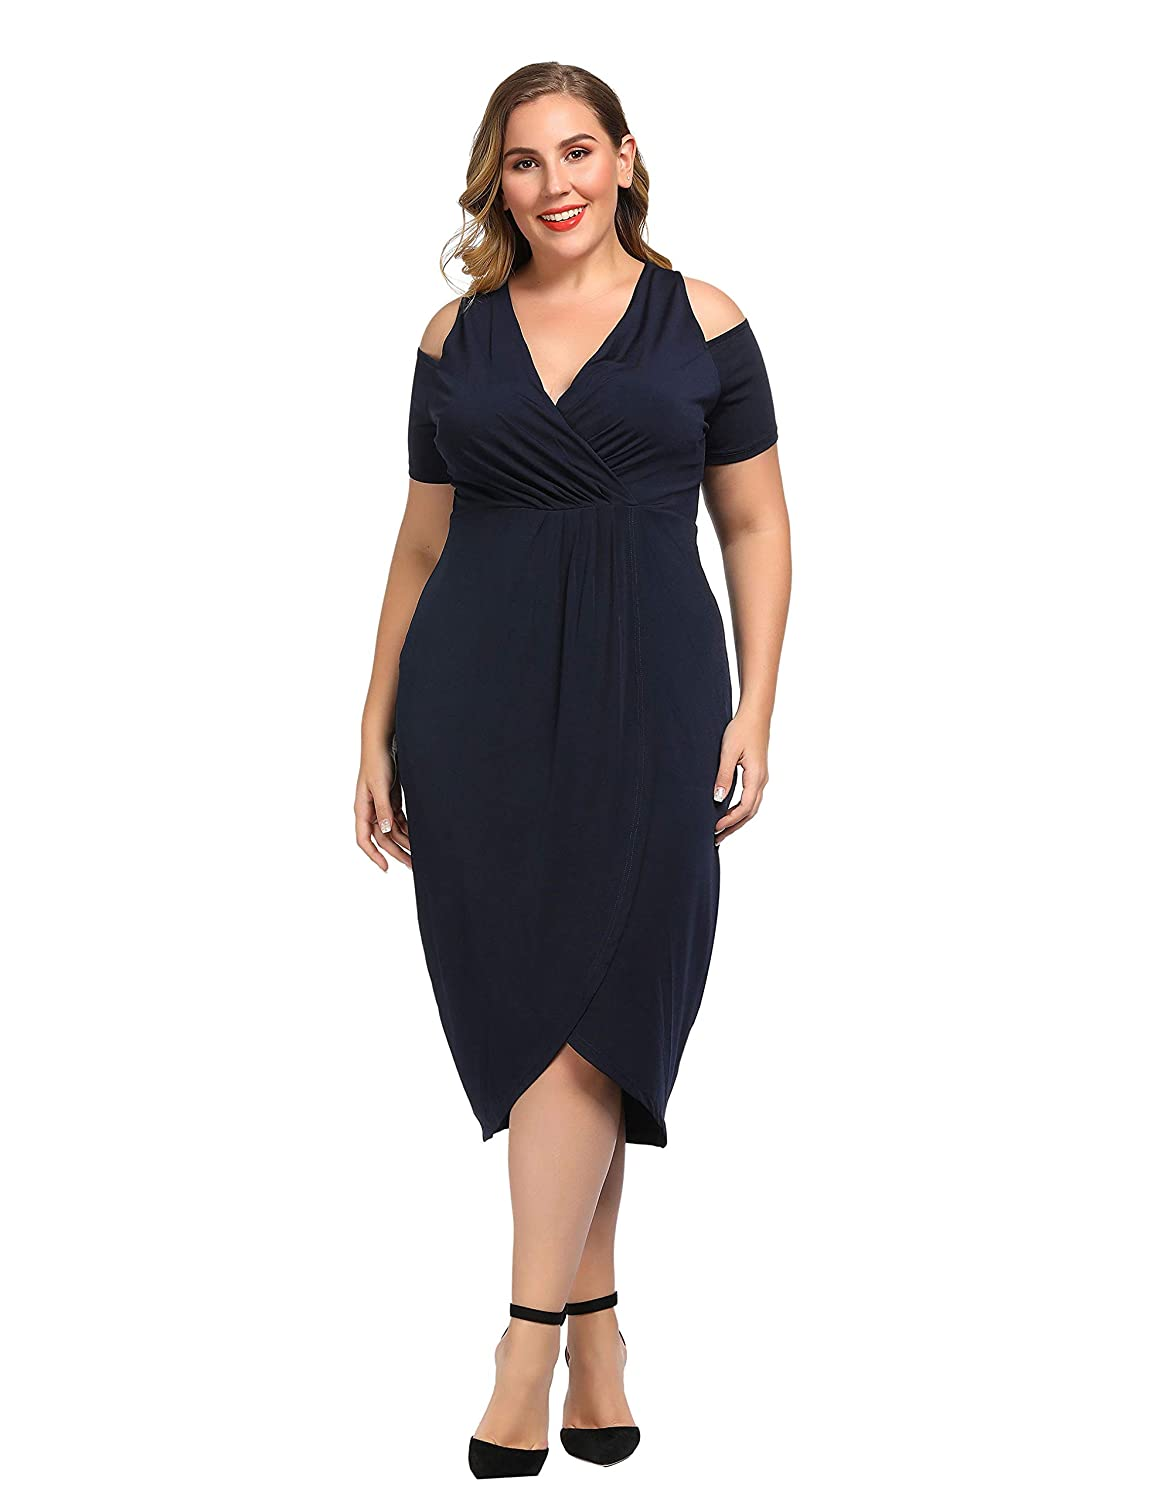 c7575841782 Chicwe Women s Plus Size Stretch Cold Shoulder Solid Dress with Slit - Calf Length  Casual Party Cocktail Dress at Amazon Women s Clothing store